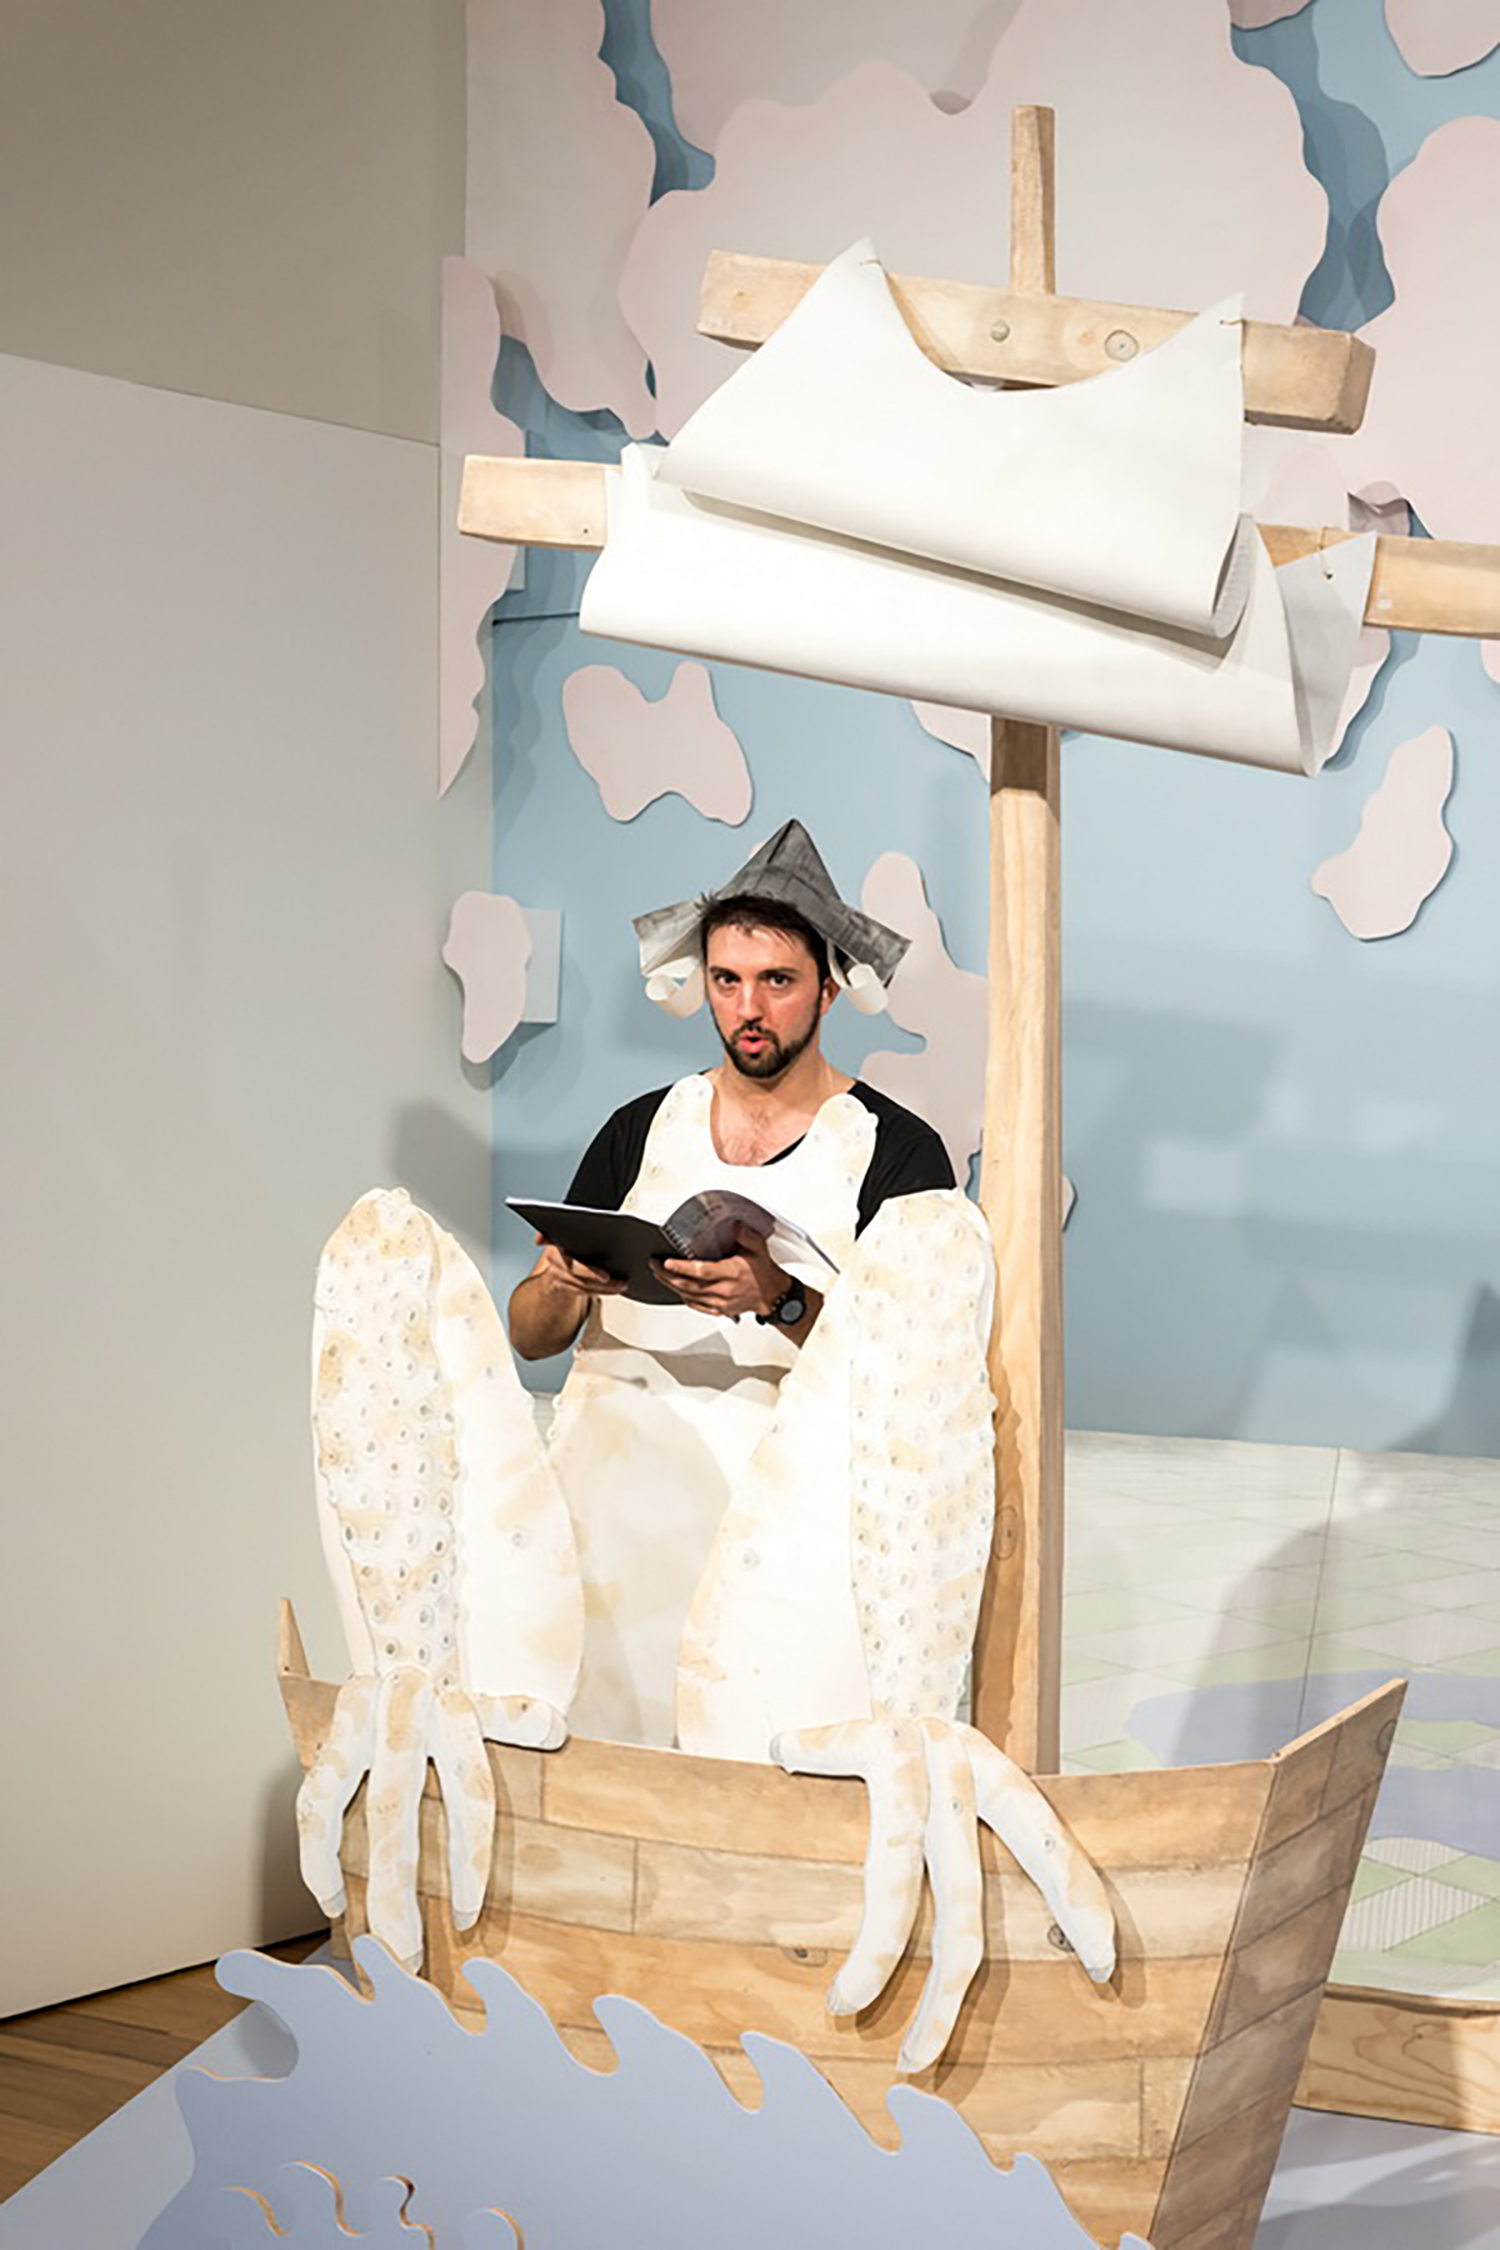 Swan Song #7 (performance still), 2014, 10:00 minutes, Photo: Museum of Brisbane